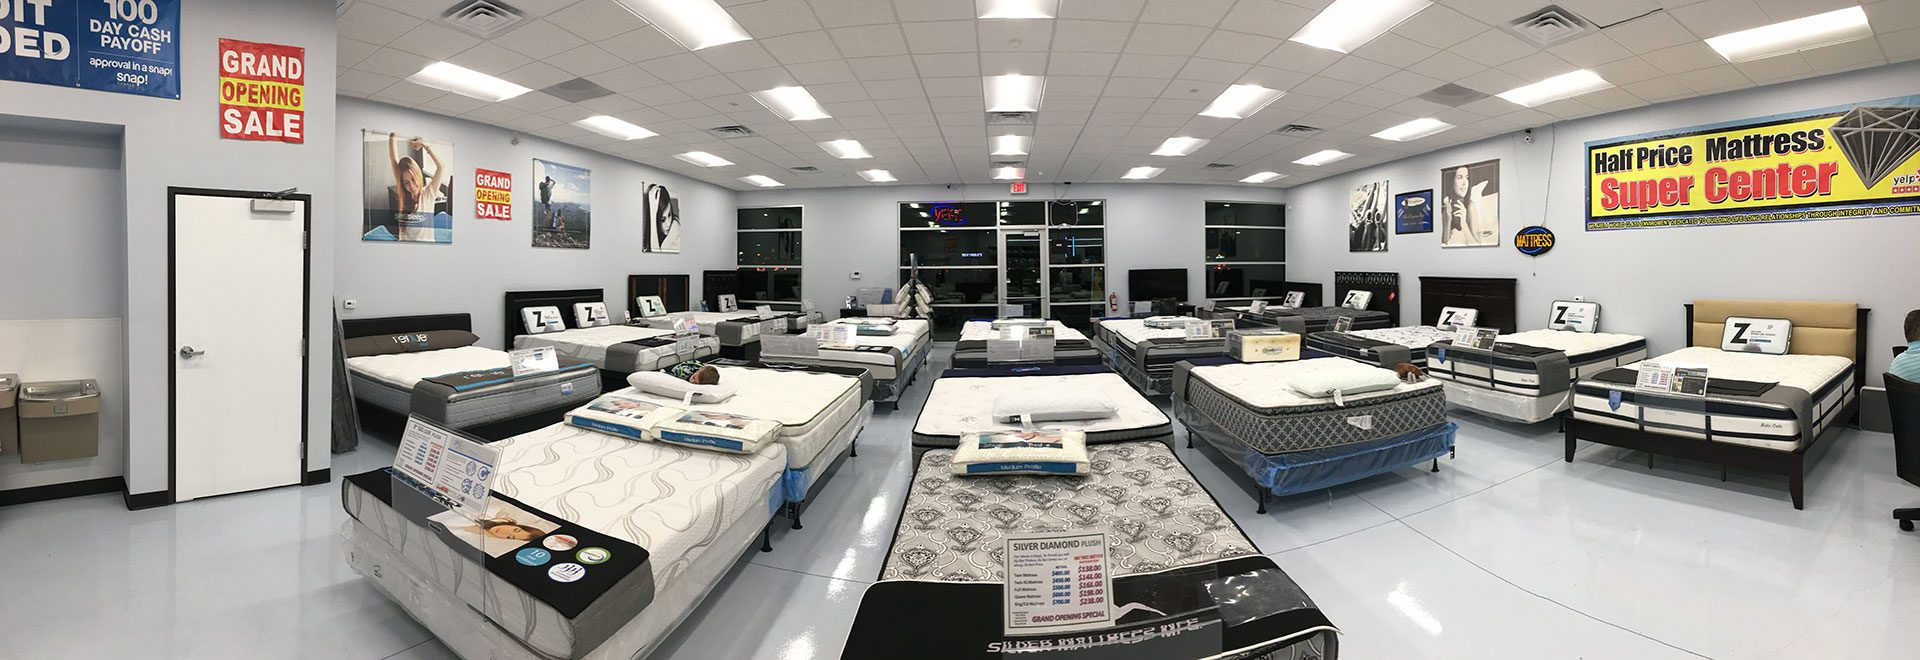 Large selection of affordable mattresses in Las Vegas